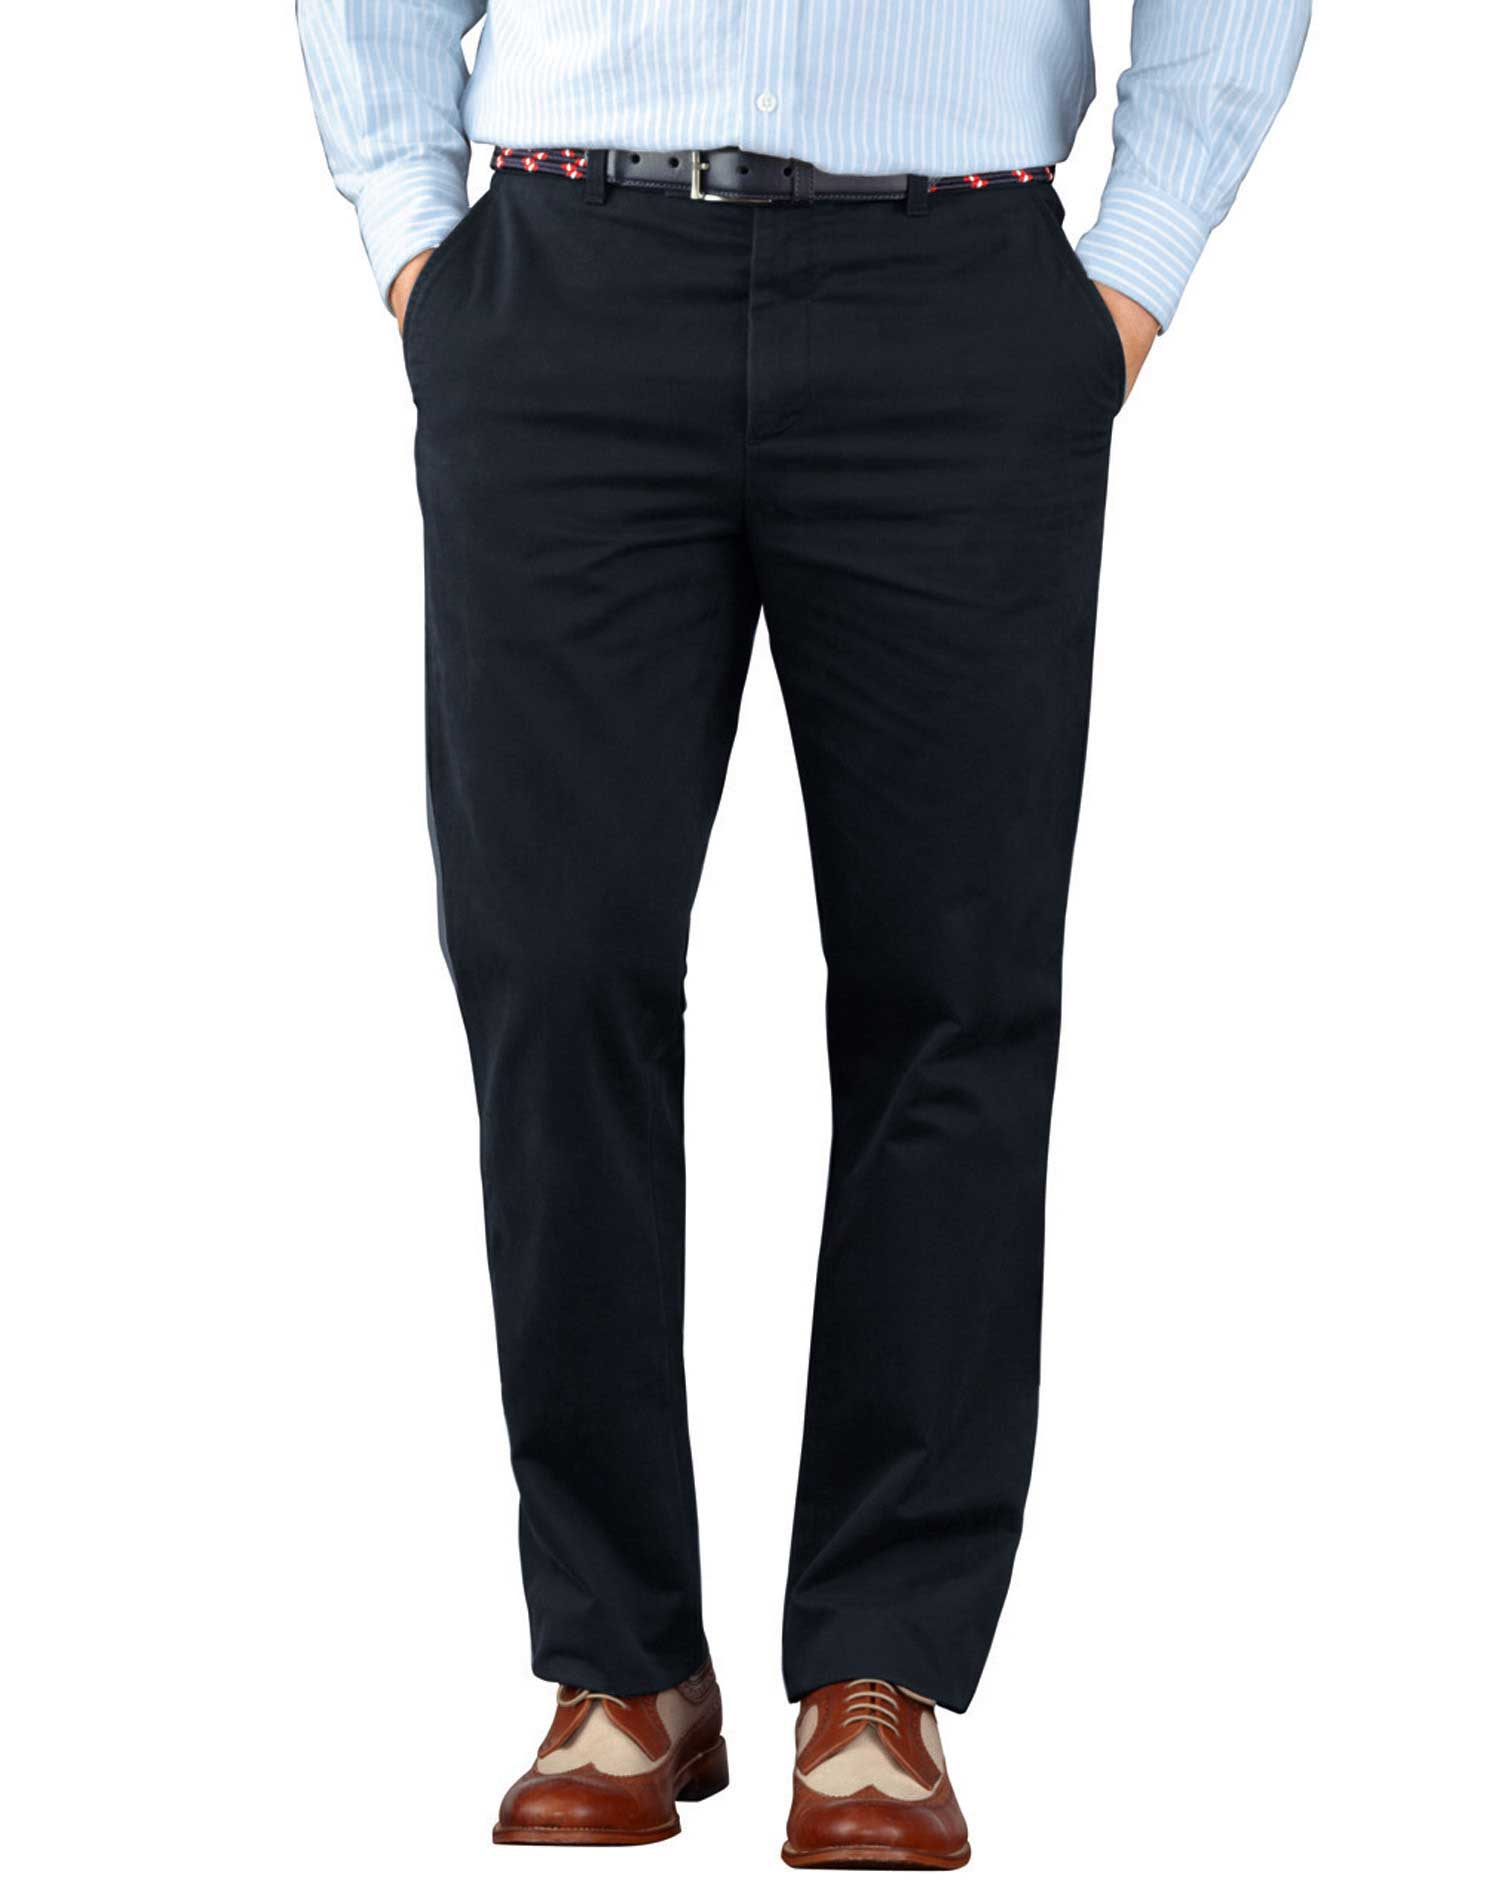 Navy Slim Fit Flat Front Weekend Cotton Chino Trousers Size W34 L30 by Charles Tyrwhitt